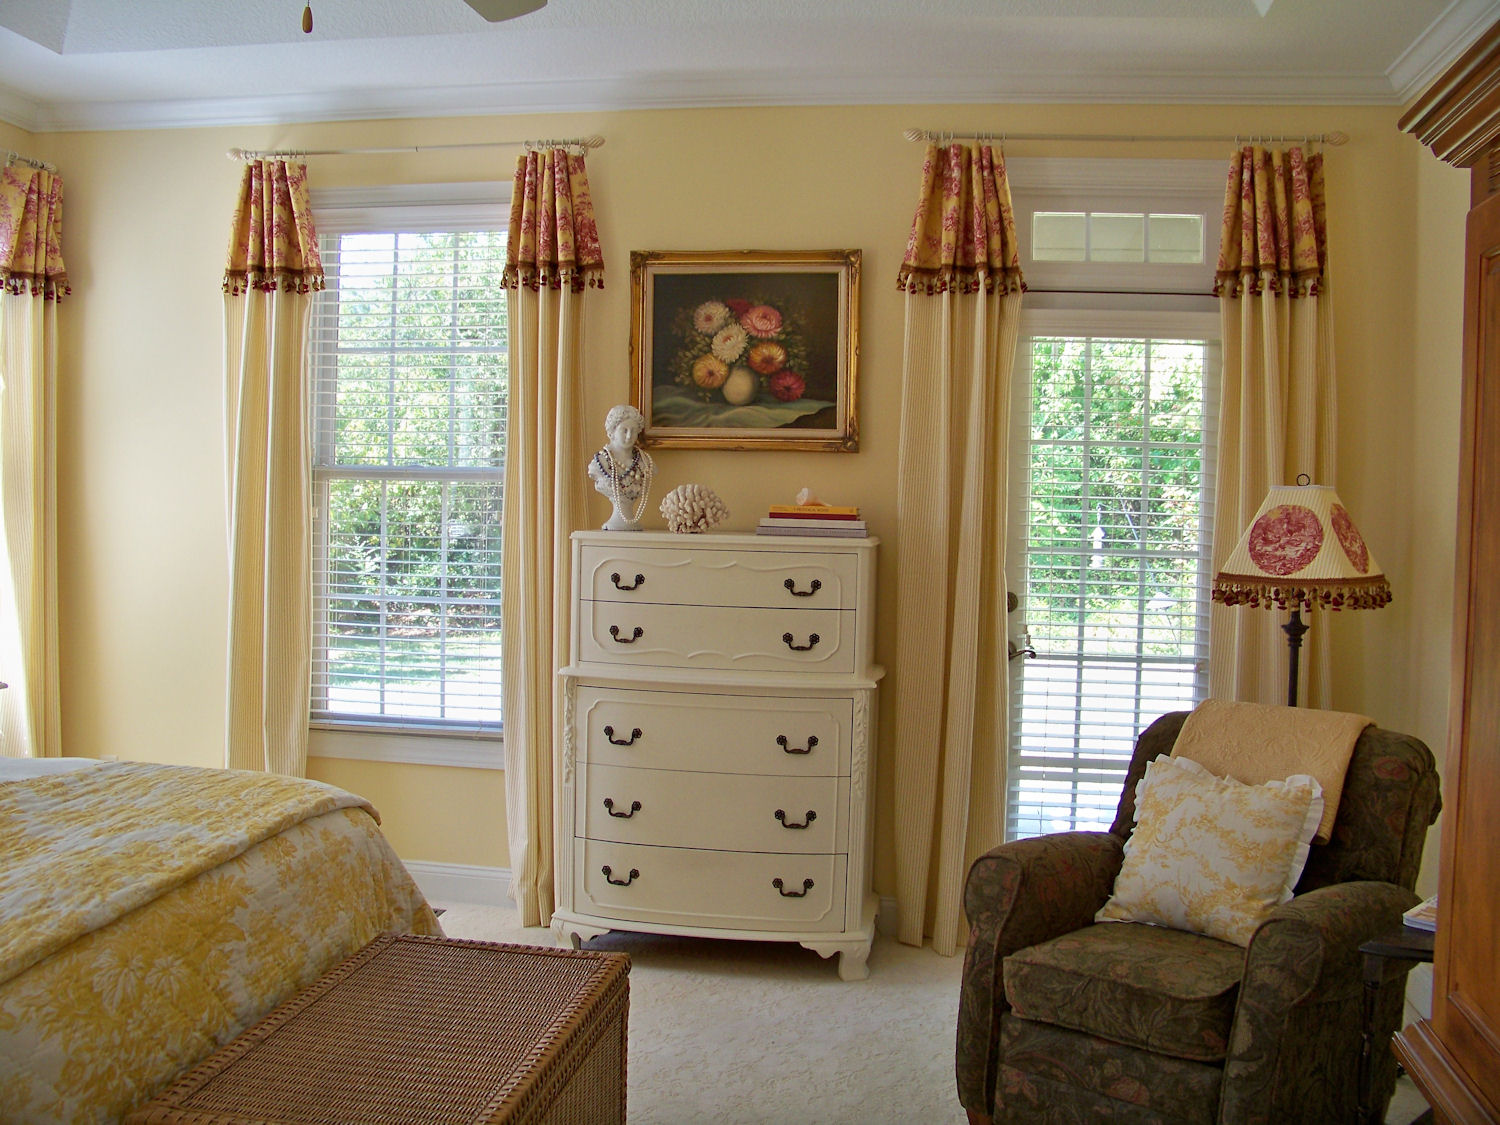 The comforts of home master bedroom curtain reveal - Bedroom curtain designs pictures ...